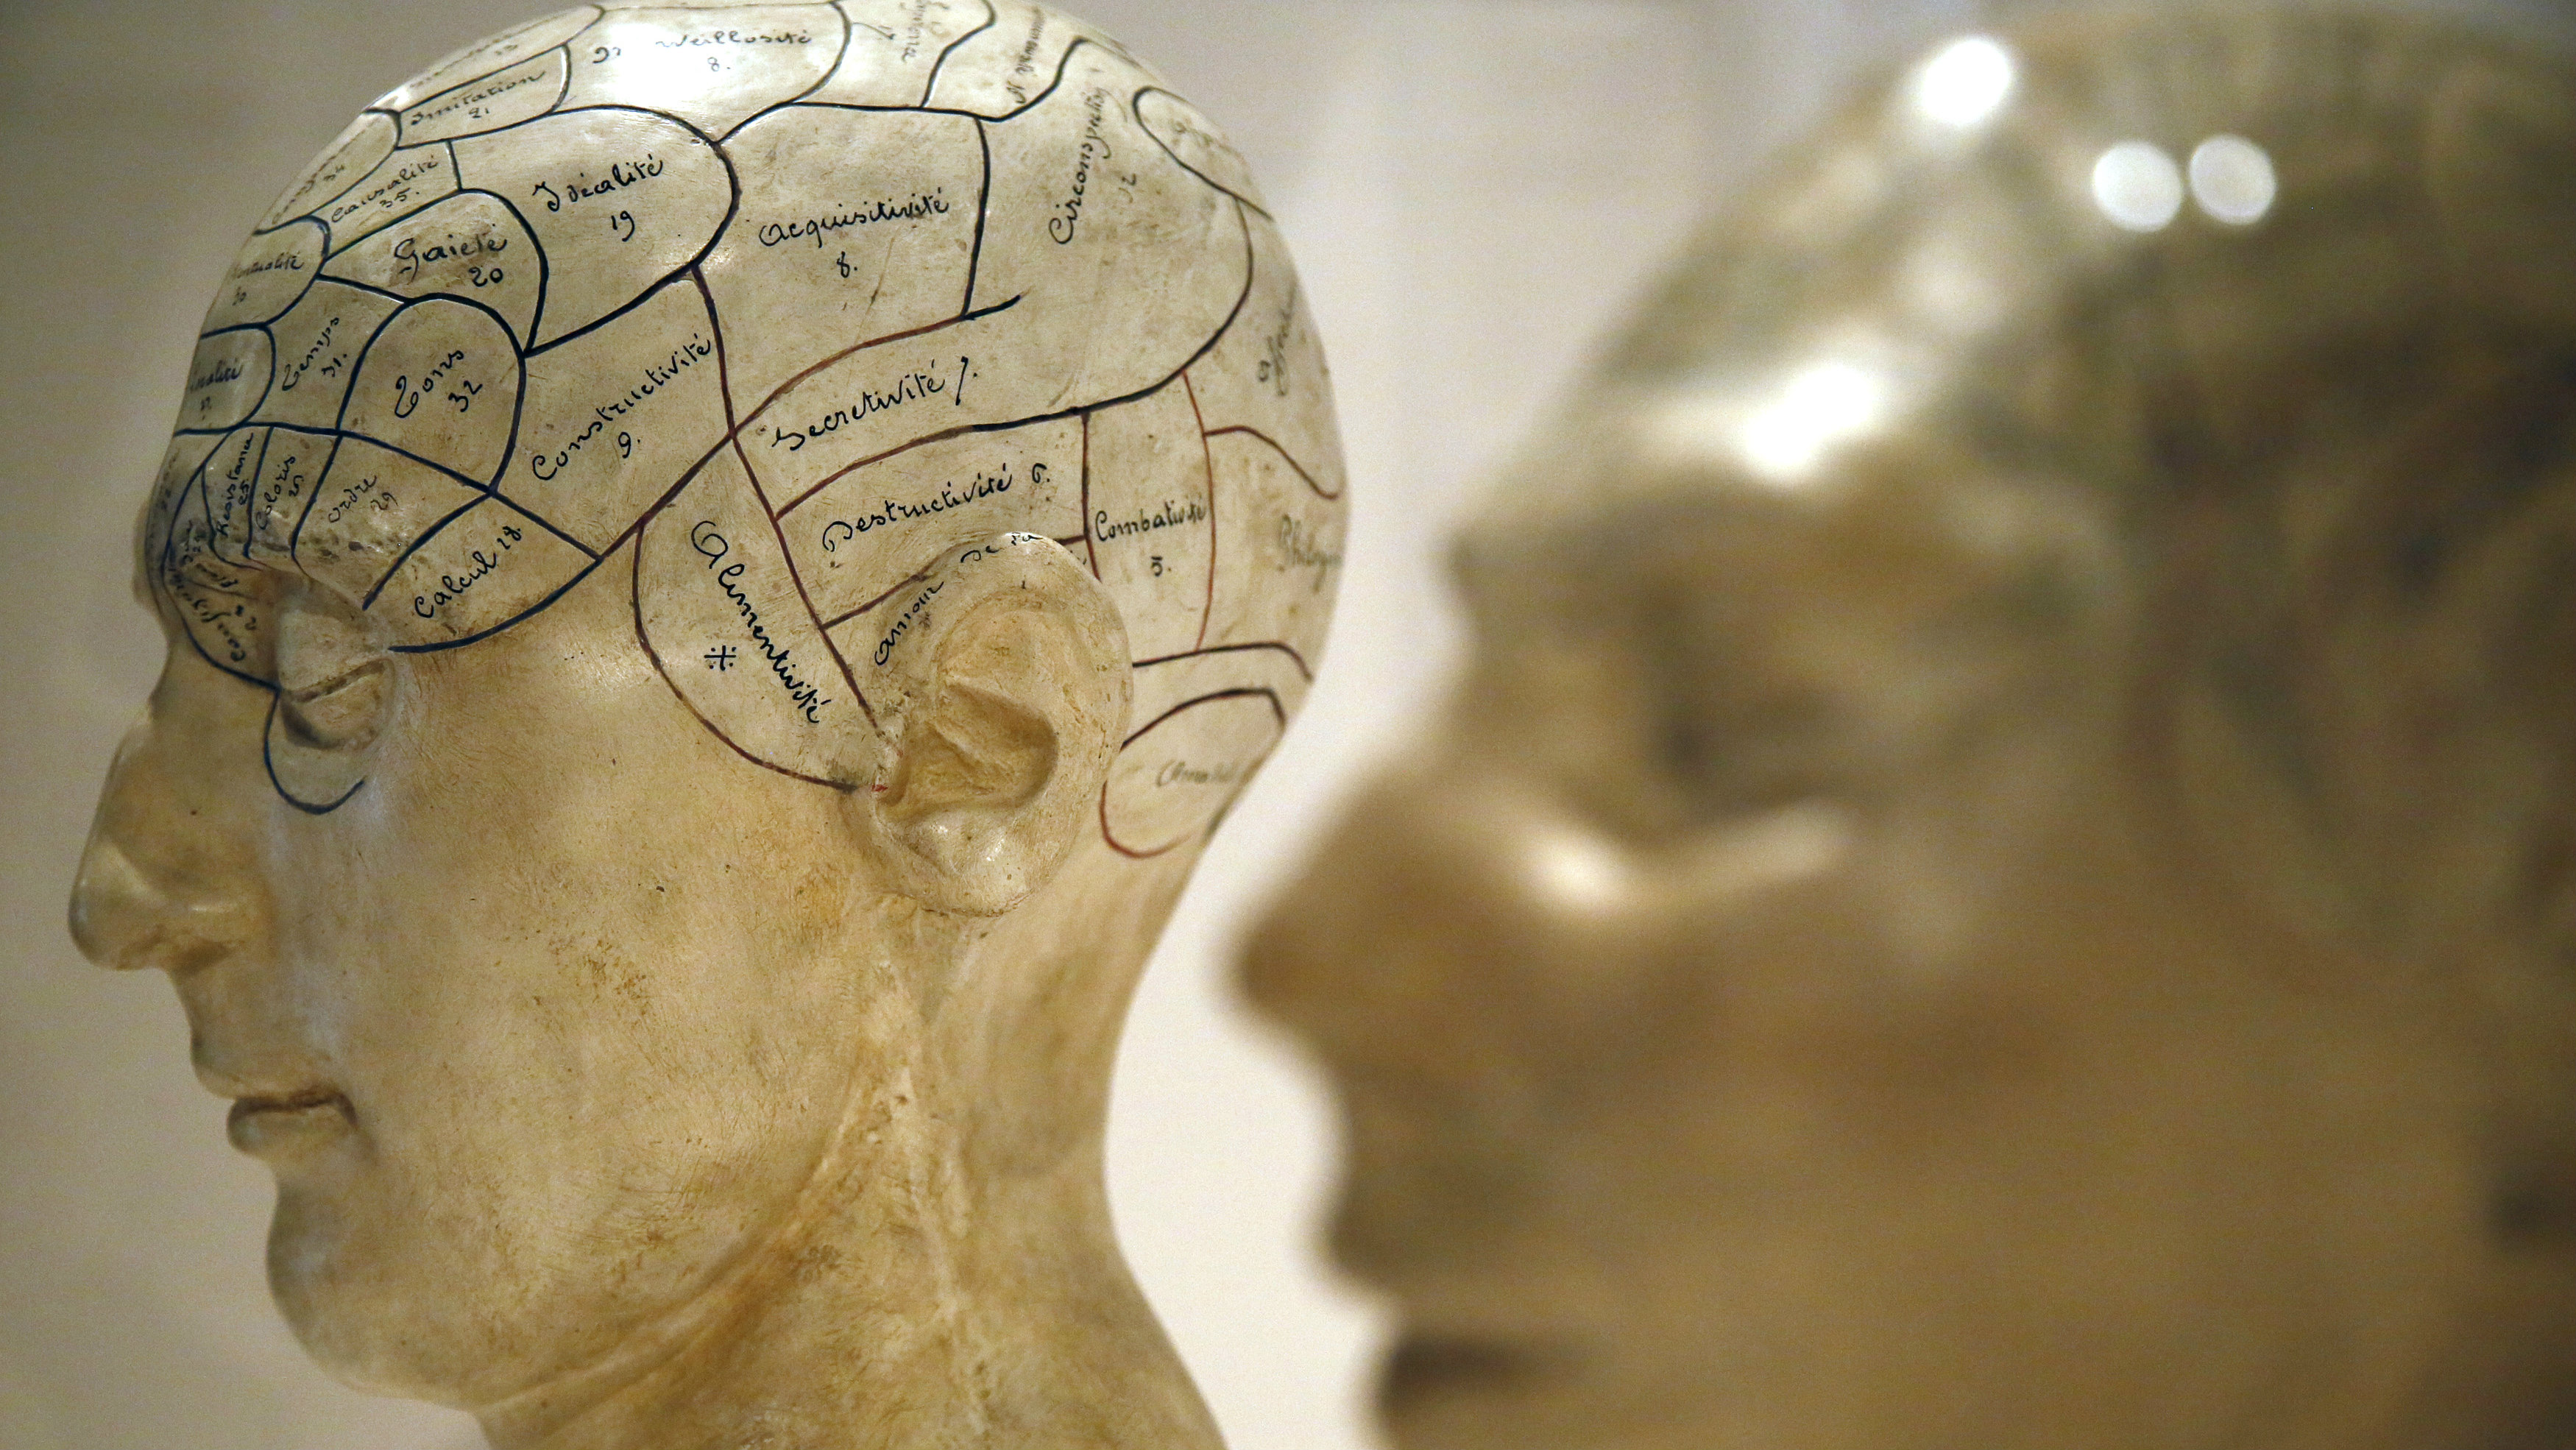 Modifying the mind for a more productive life.